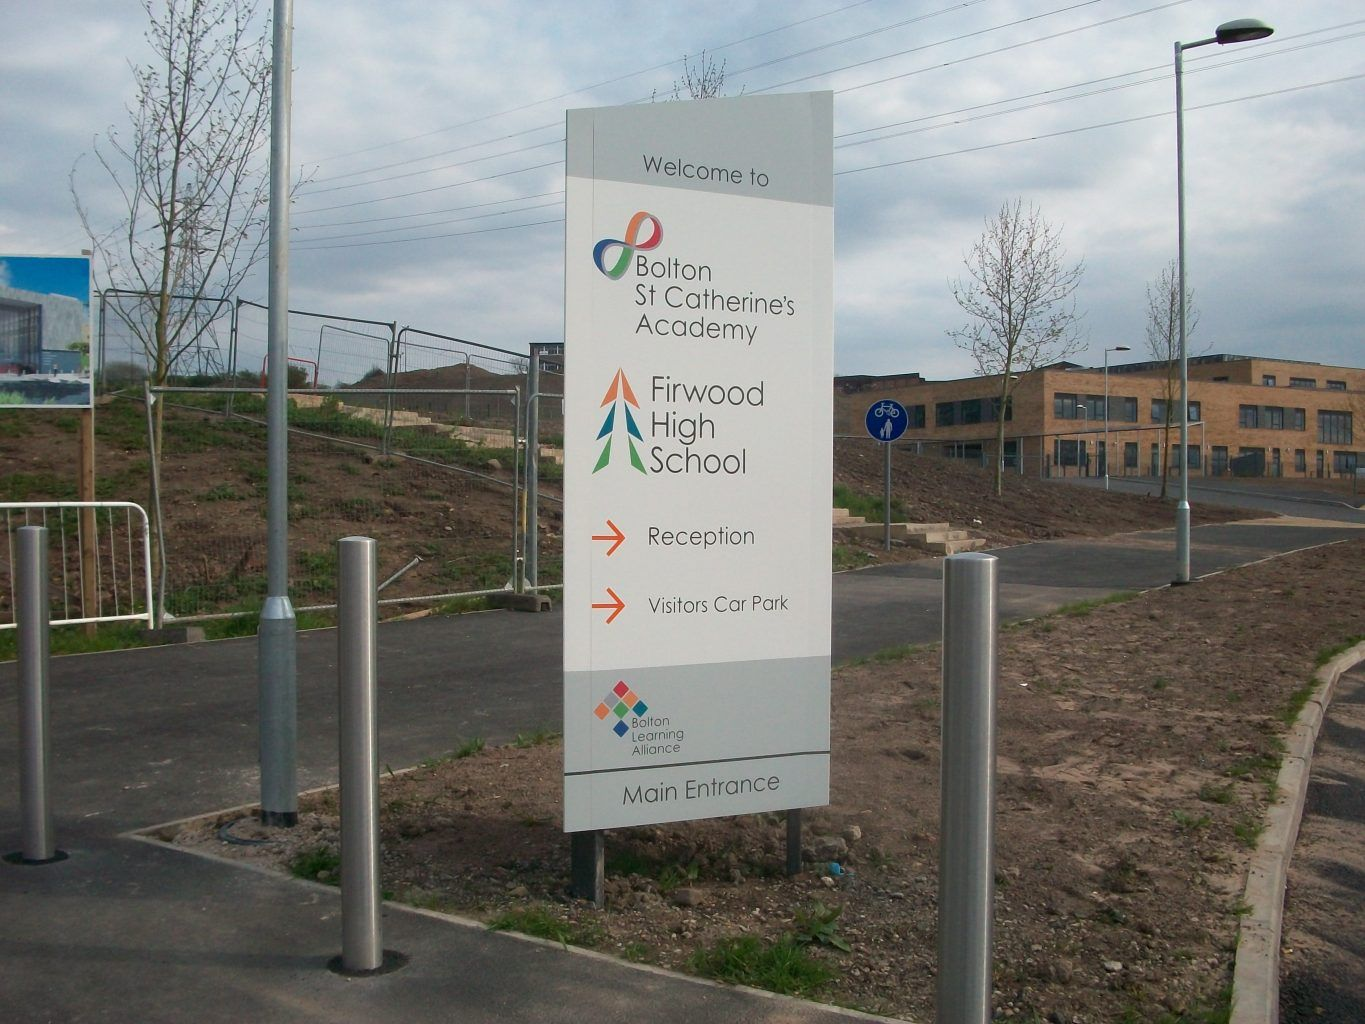 St Catherines Academy Monolith Sign (2)